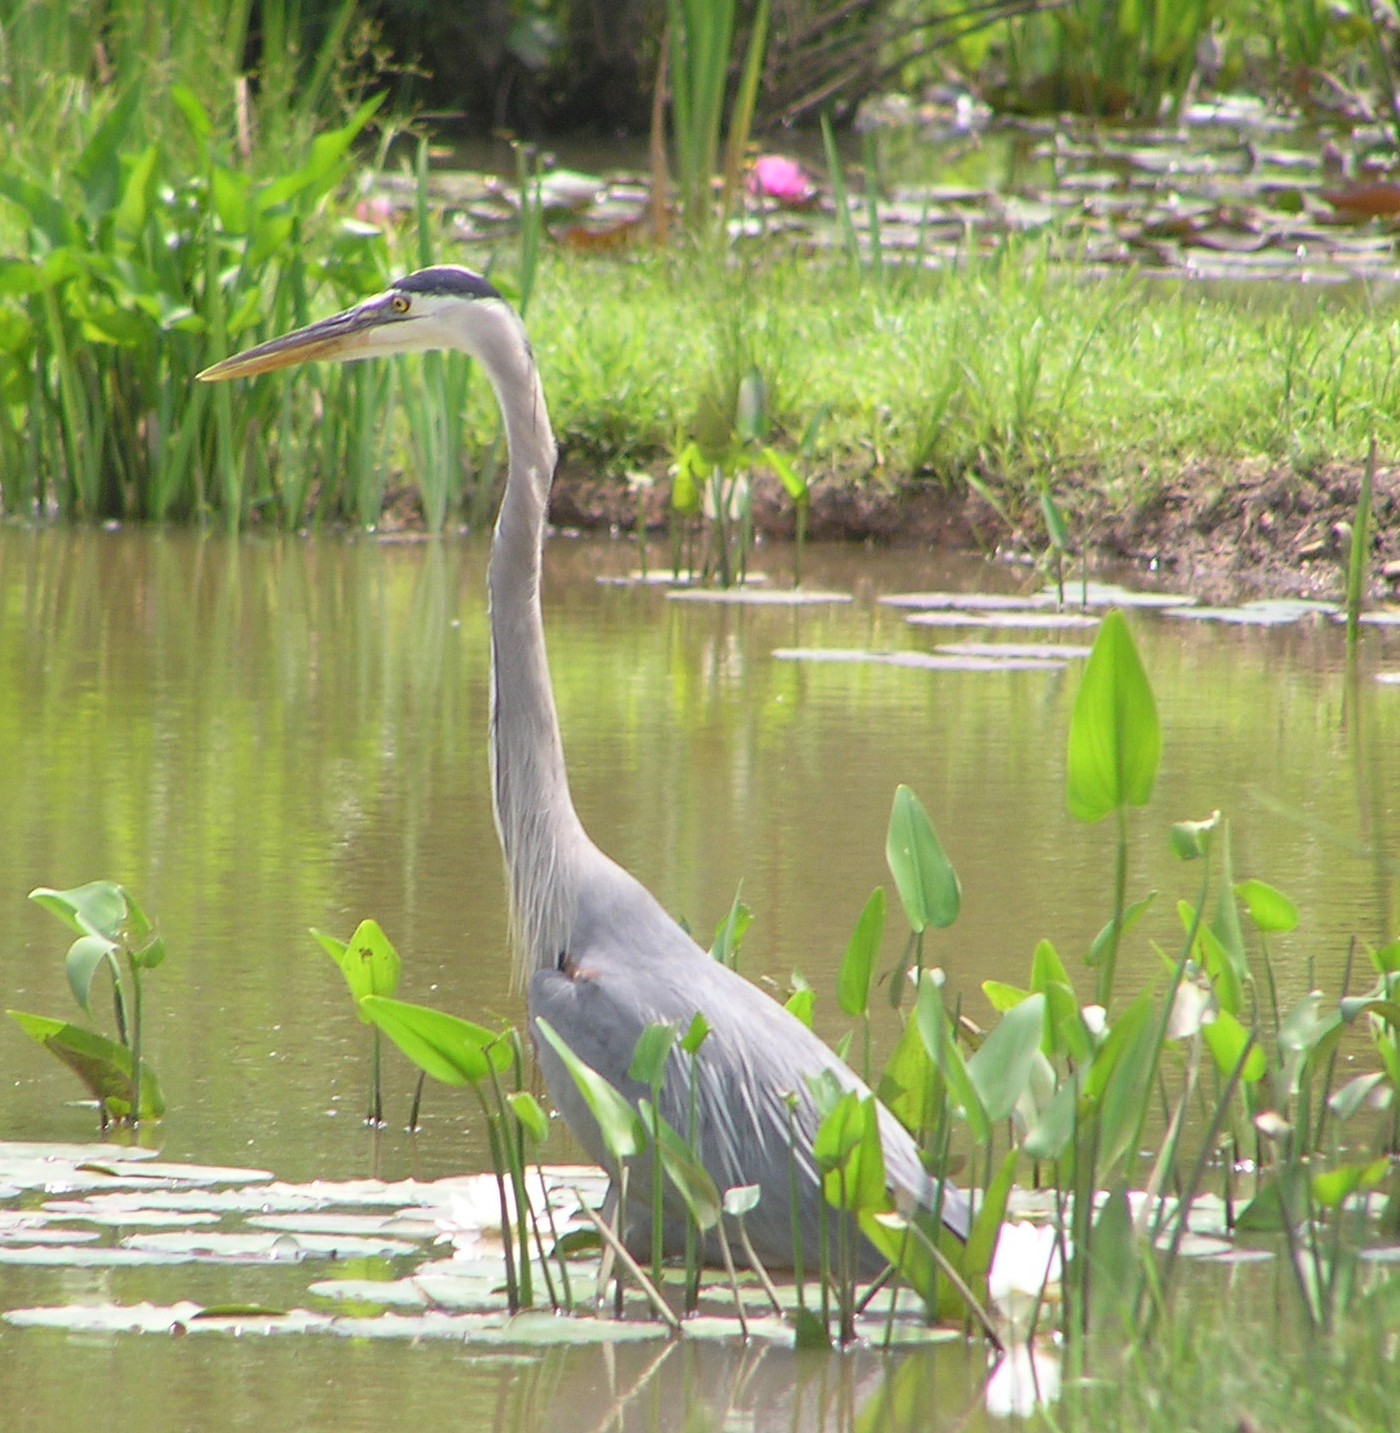 Great blue heron hunting in a pond